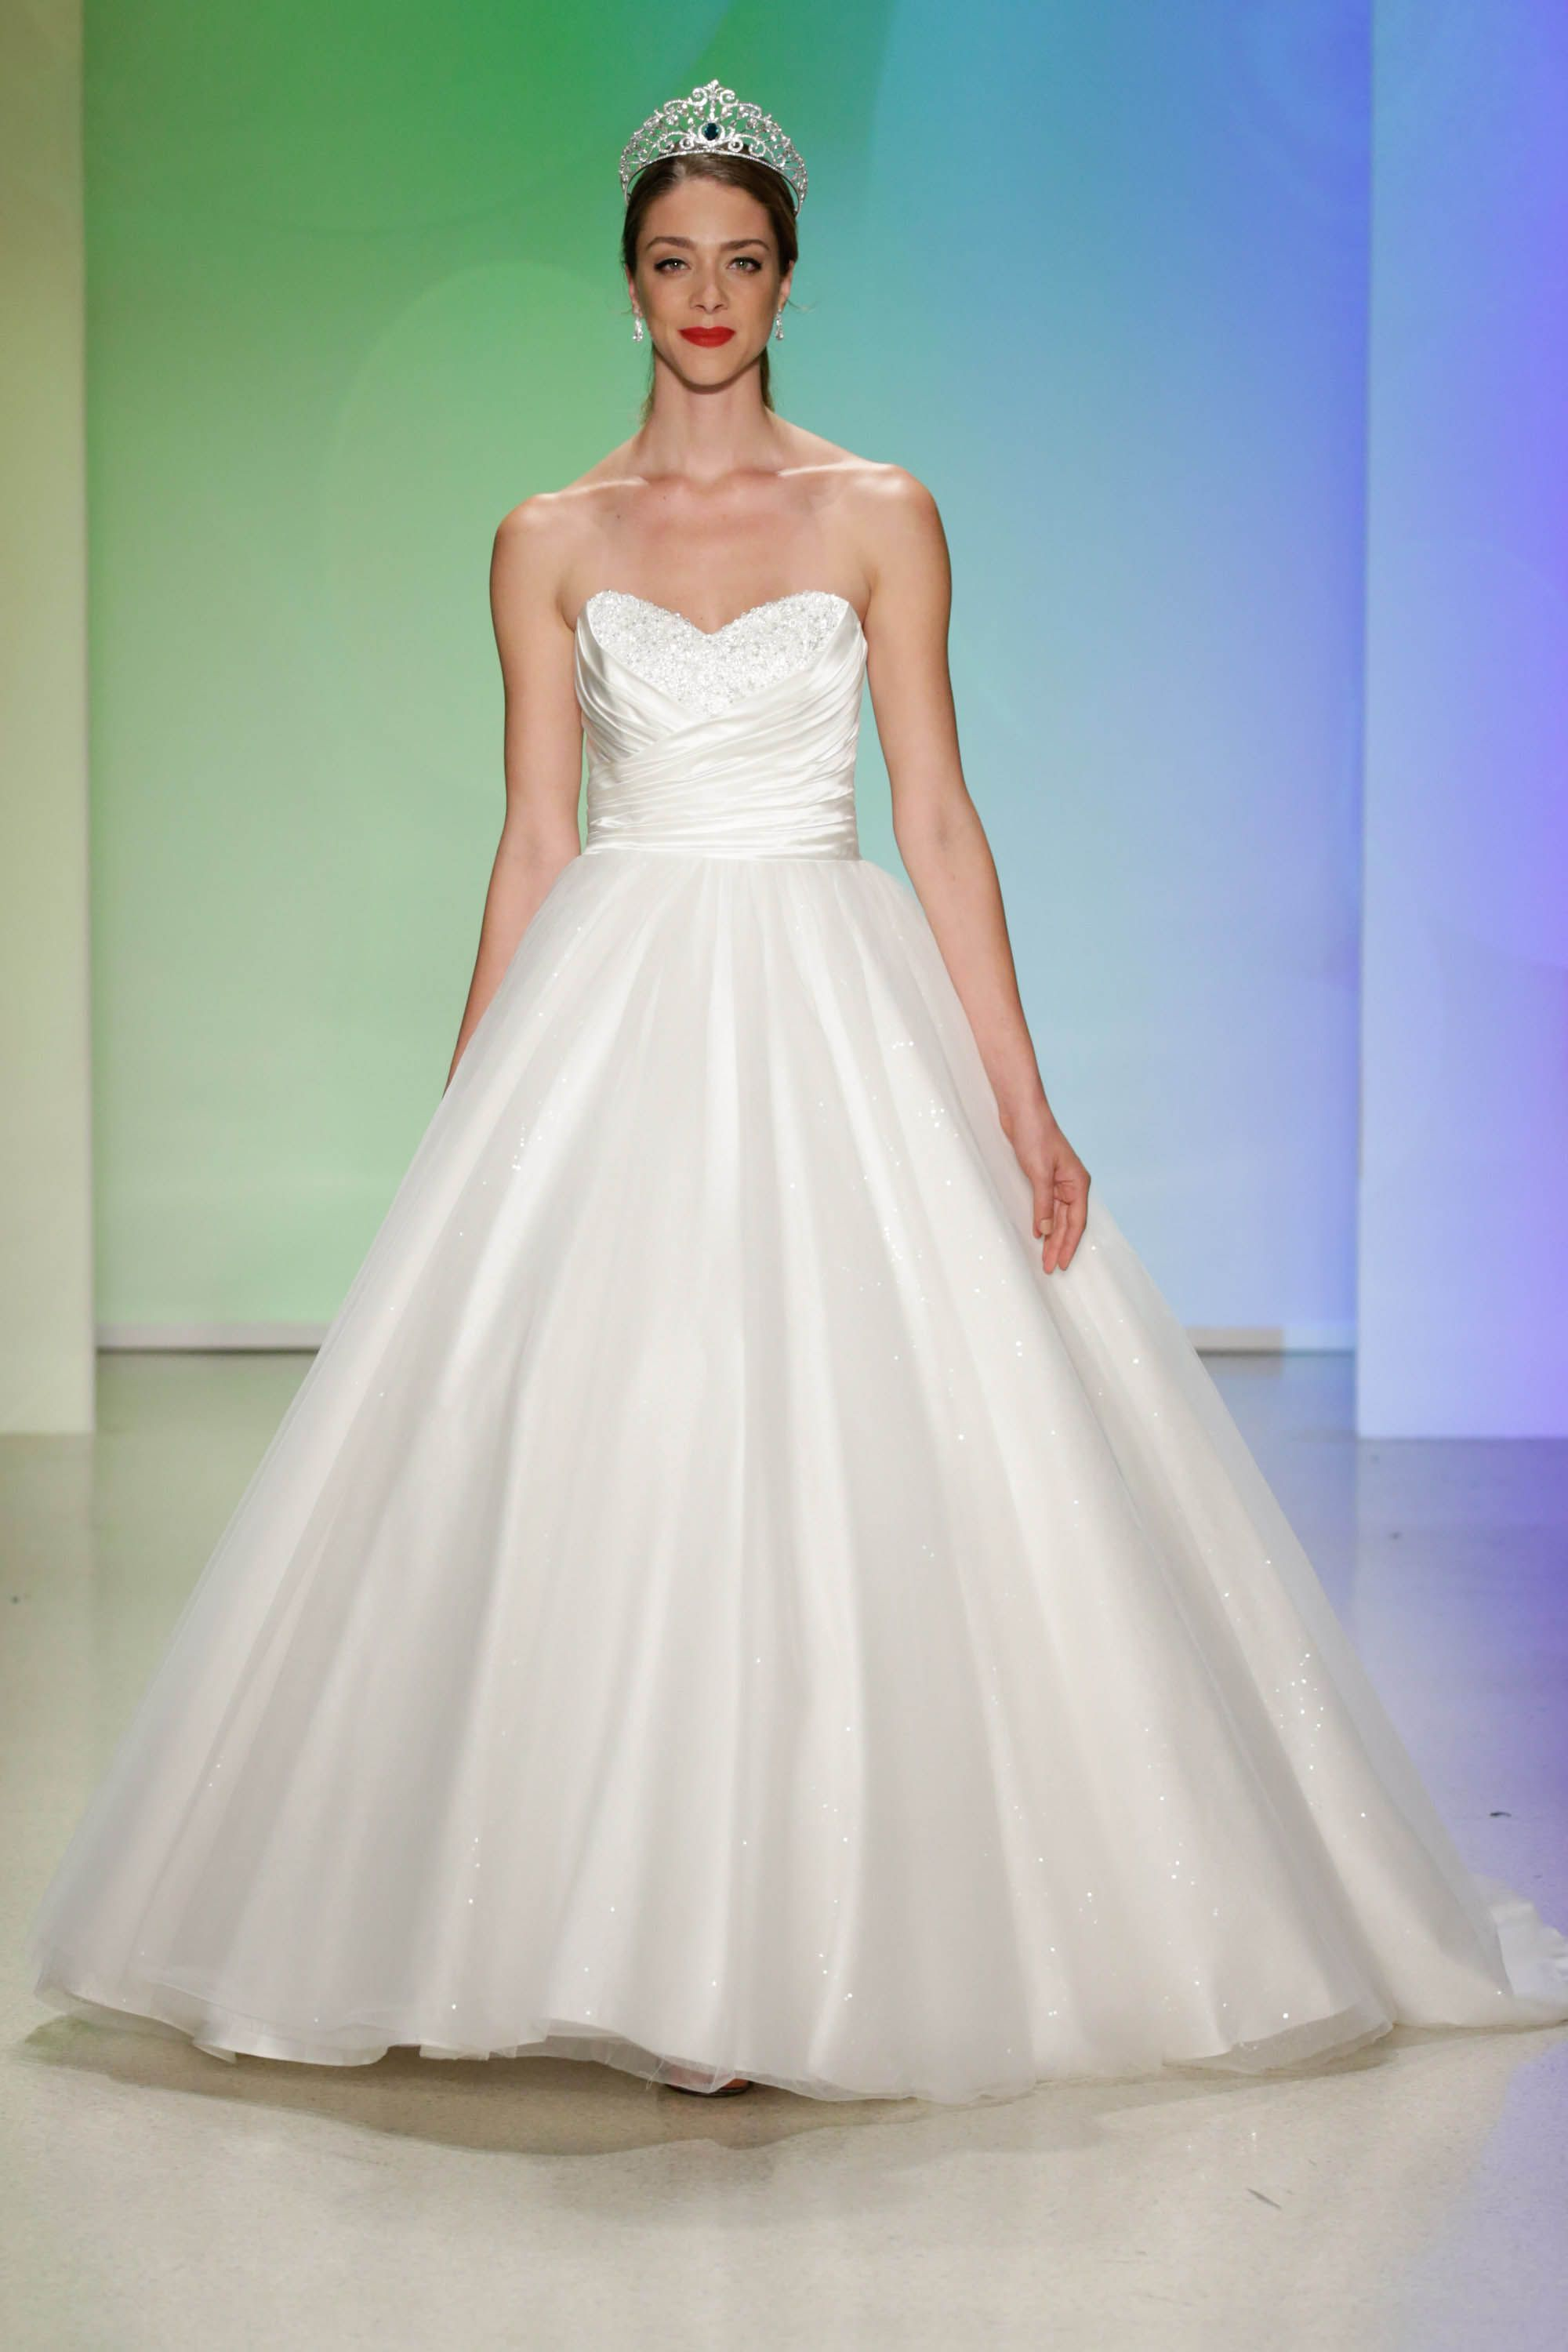 cinderella inspired anniversary gown with matching tiara - 2017